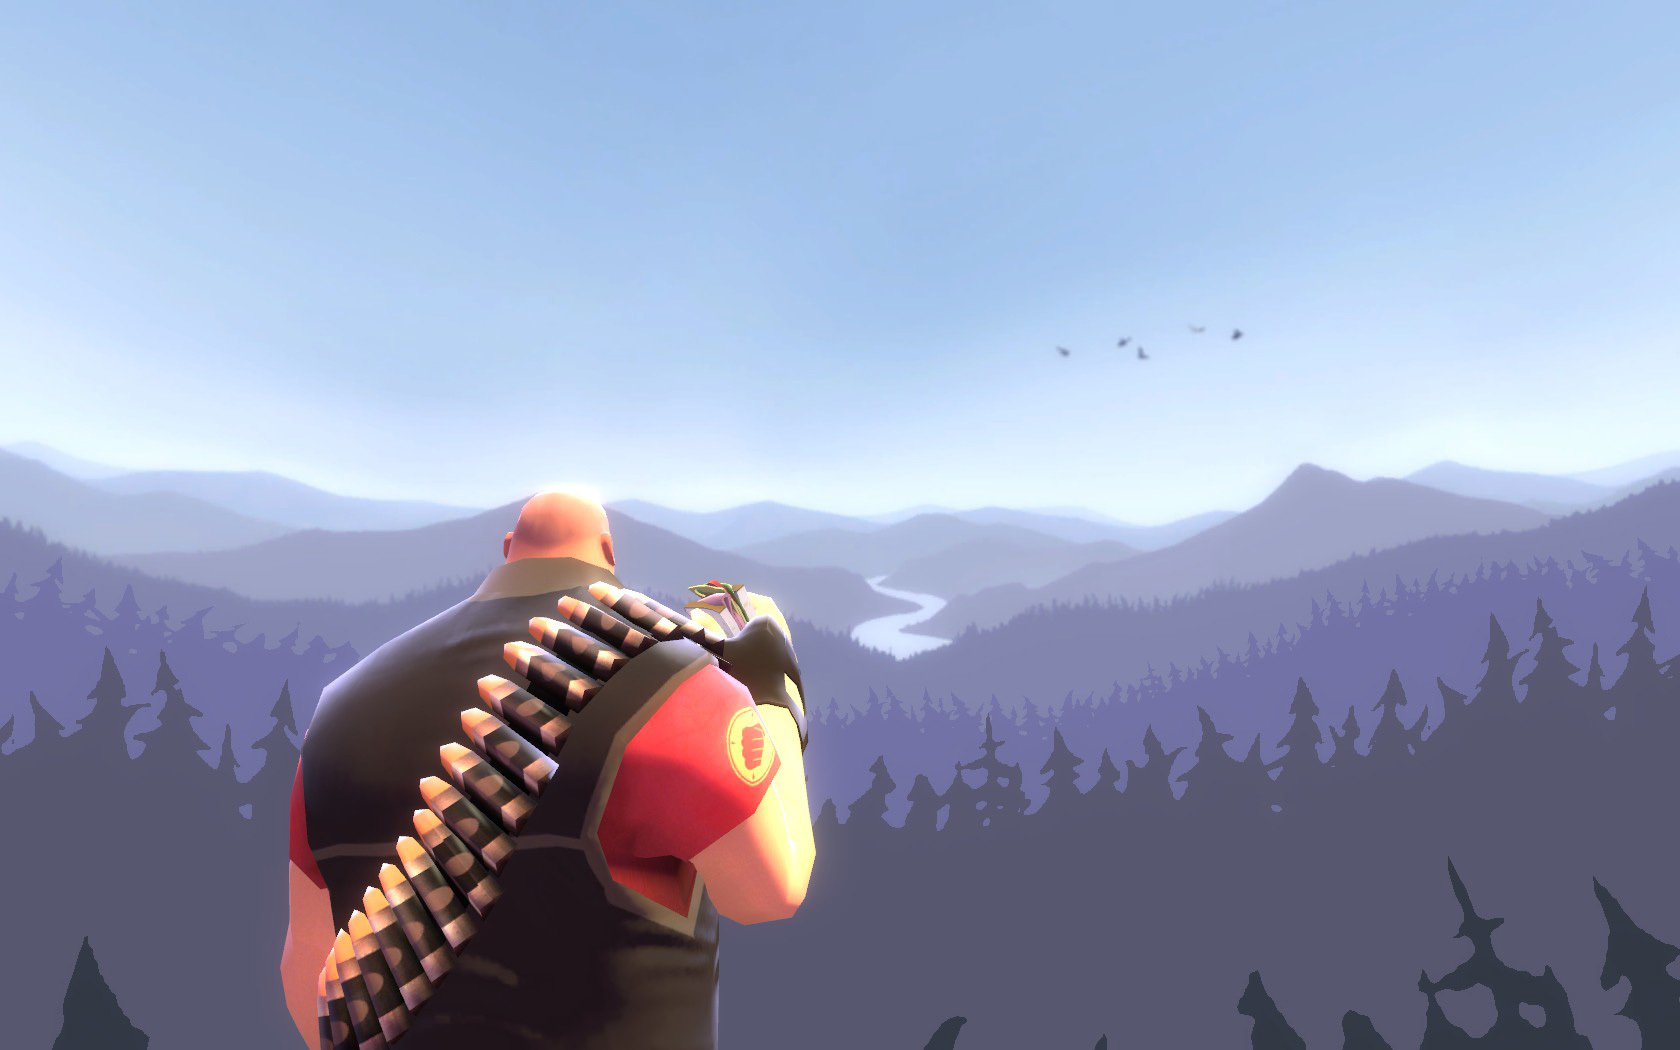 lumber team fortress 2